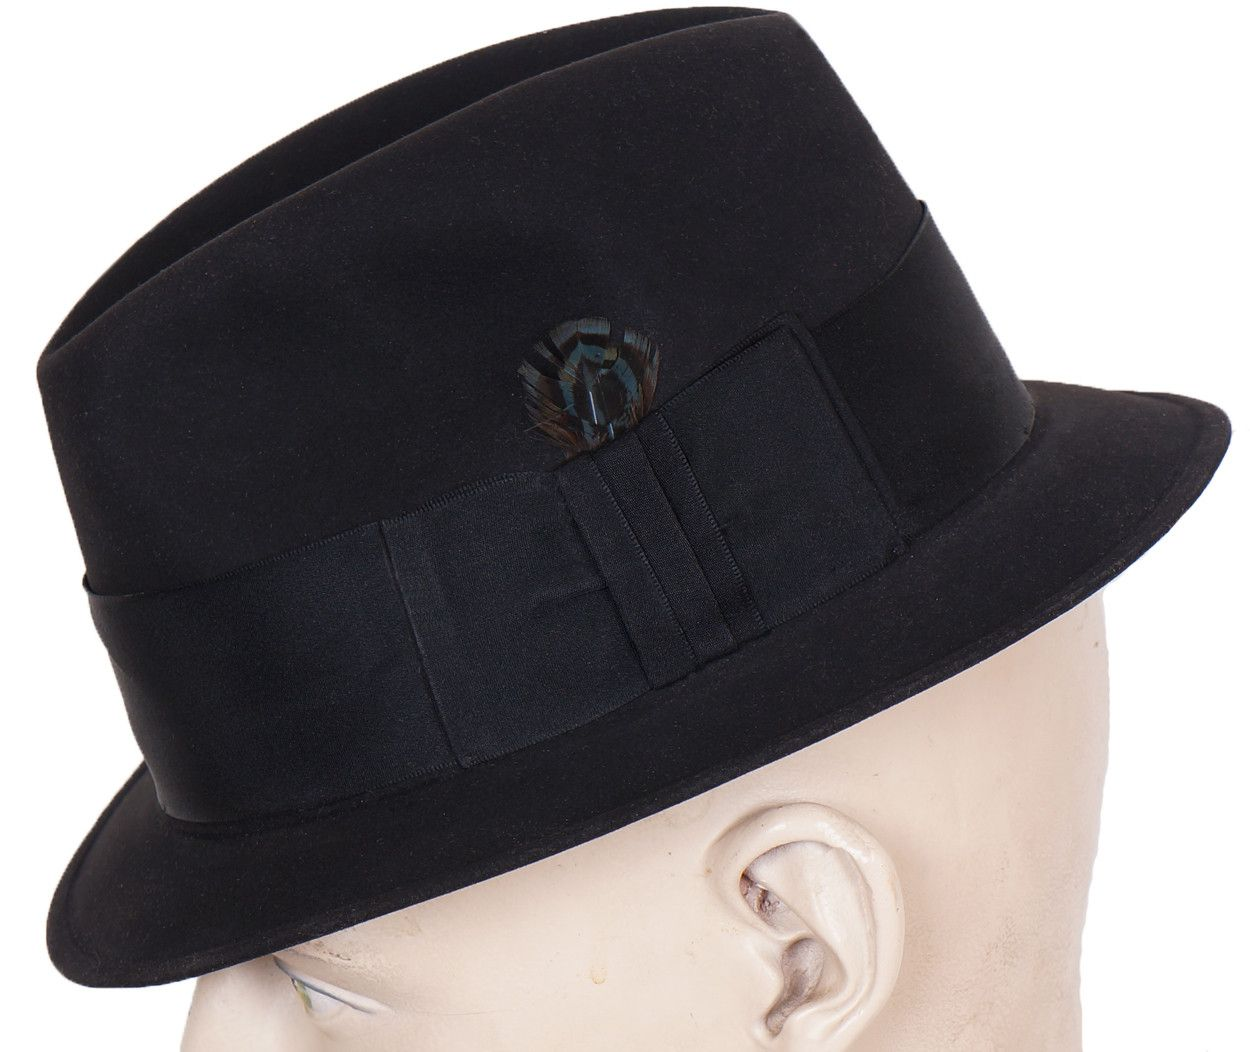 """... nice quality 1960s narrow brim """"Mad Men"""" style fedora hat. This hat is  the type of fashion style popular with ska musicians during the early to  mid 60s. a00e6804ebb"""